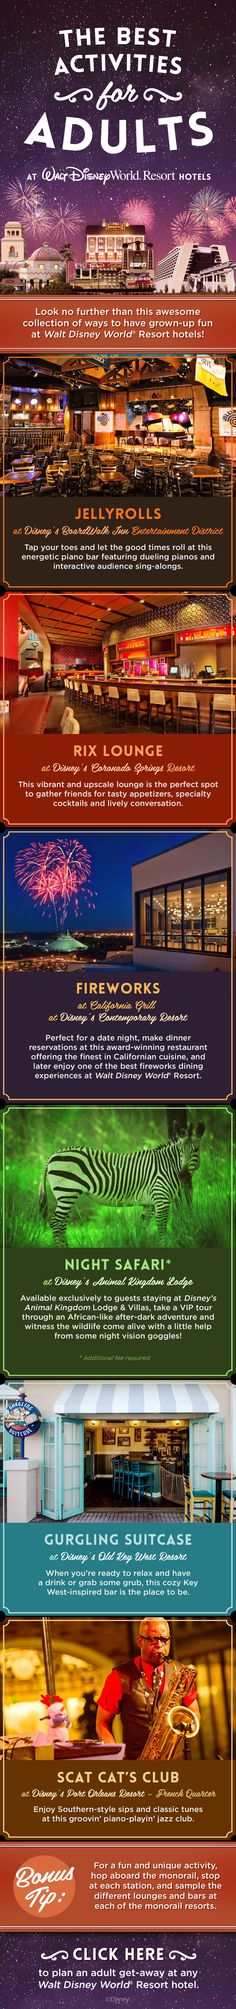 Grown-ups will have just as much fun as kids with these Walt Disney World Resort Activities for Adults! Enjoy fireworks, lounges, music, and even a safari during your family vacation!